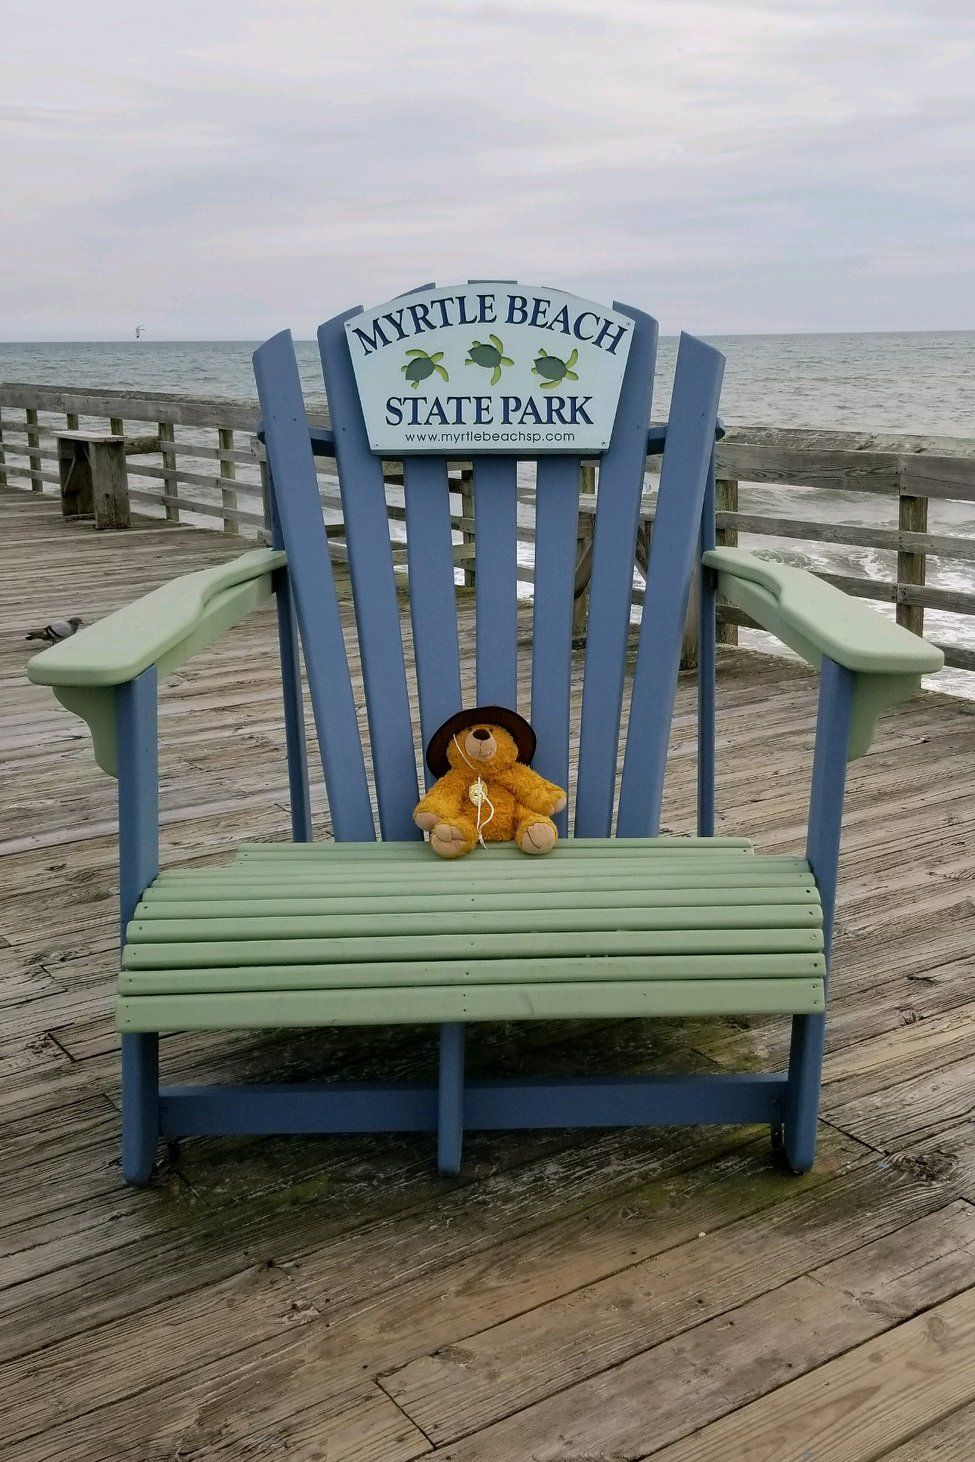 State Park Gives 5-Year-Old Boy's Lost Teddy Bear an Adventure to Remember